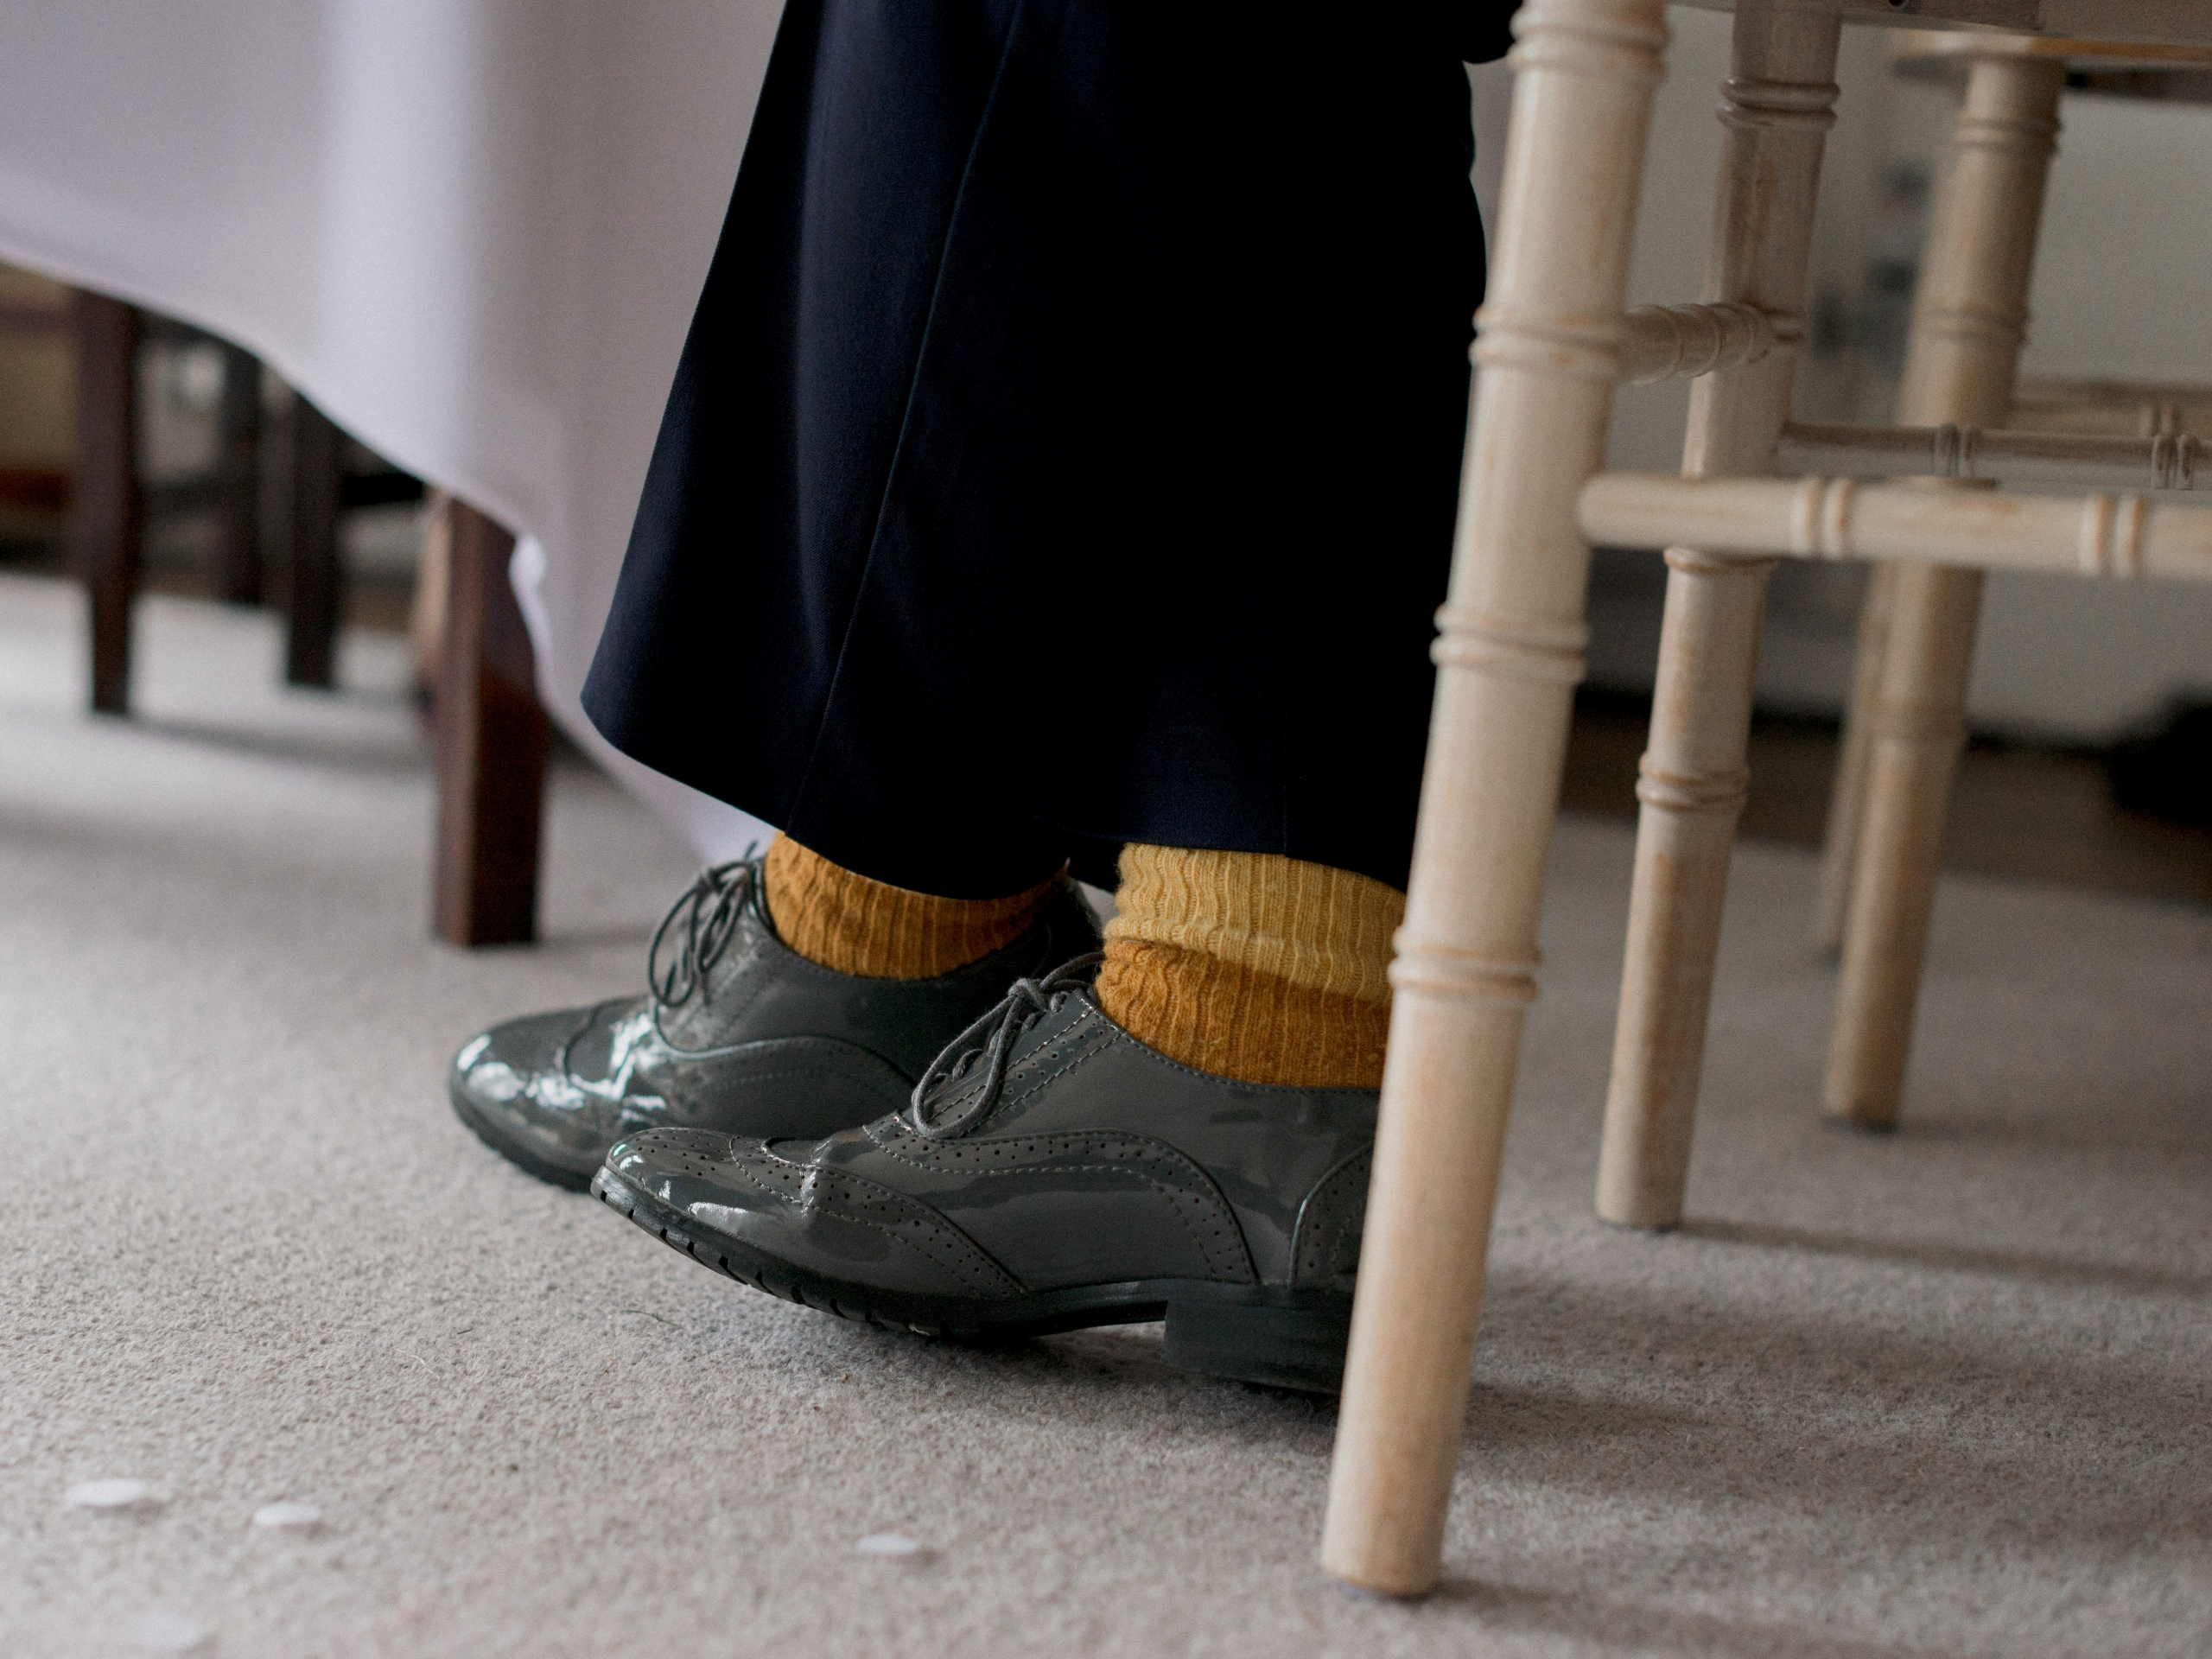 Feet of a person sitting on a white chair, crossed over, with grey brogue shoes and mustard socks